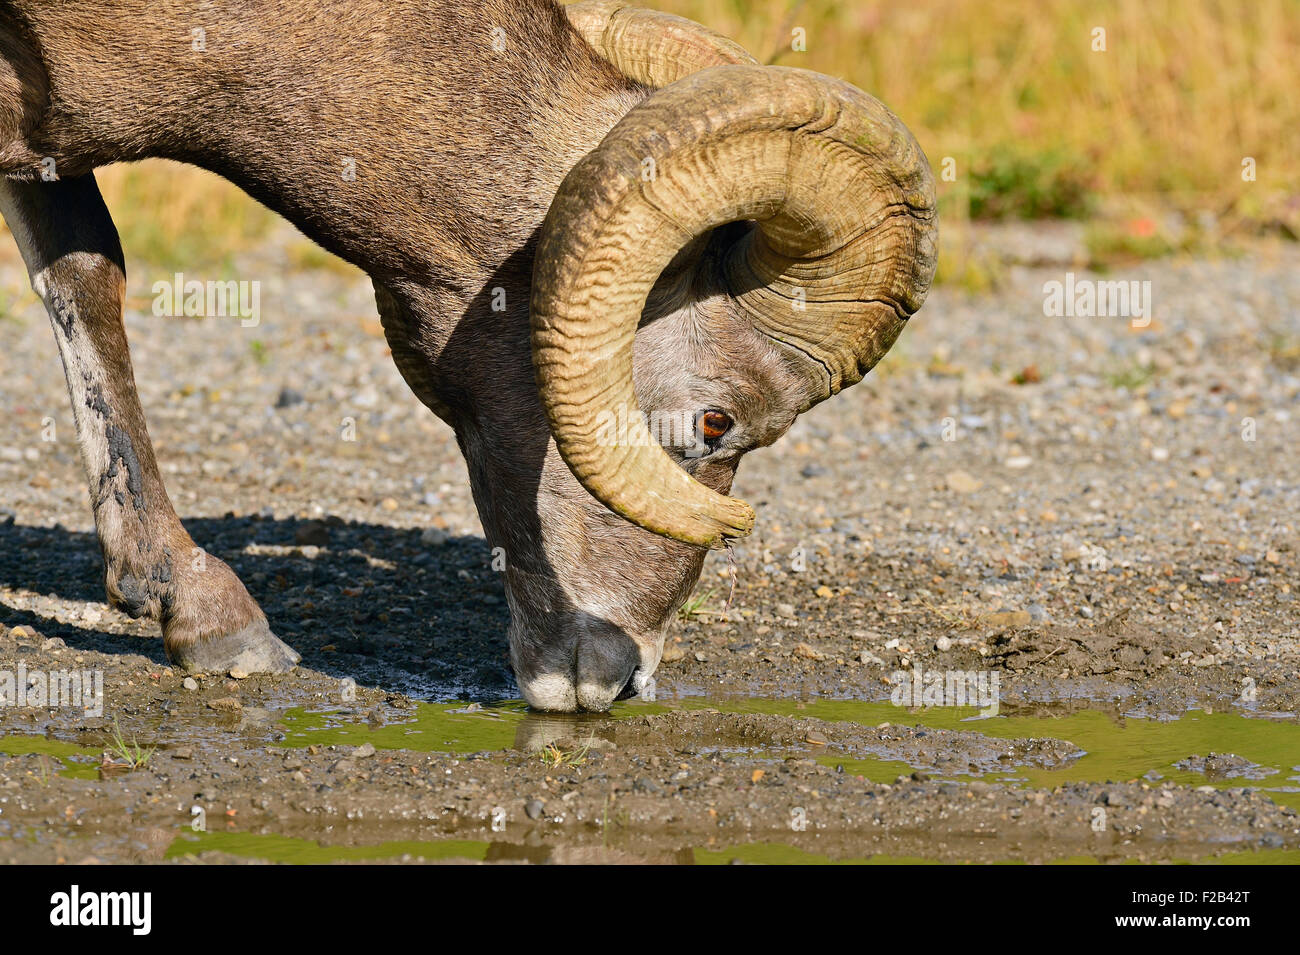 A rocky mountain bighorn sheep  Orvis canadensis; drinking water from a puddle - Stock Image